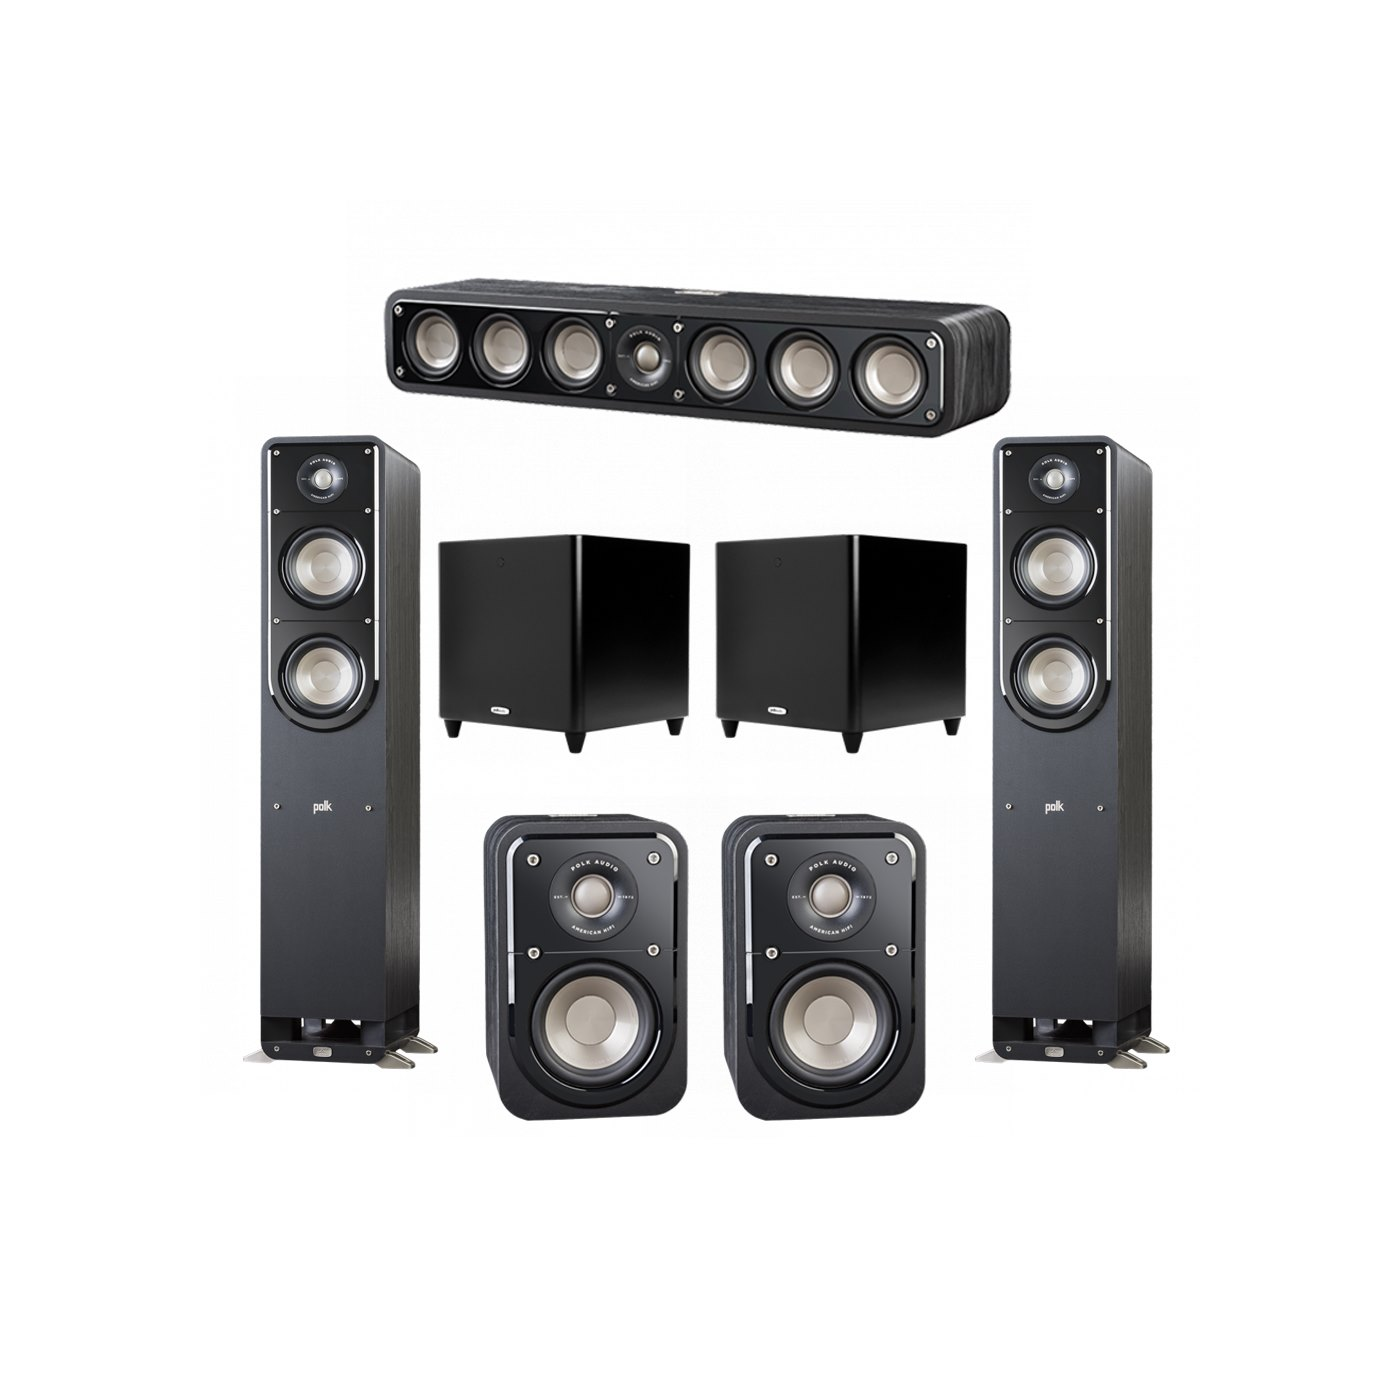 Polk Audio Signature 5.2 System with 2 S50 Tower Speaker, 1 Polk S35 Center Speaker, 2 Polk S10 Surround Speaker, 2 Polk DSW PRO 660 wi Subwoofer